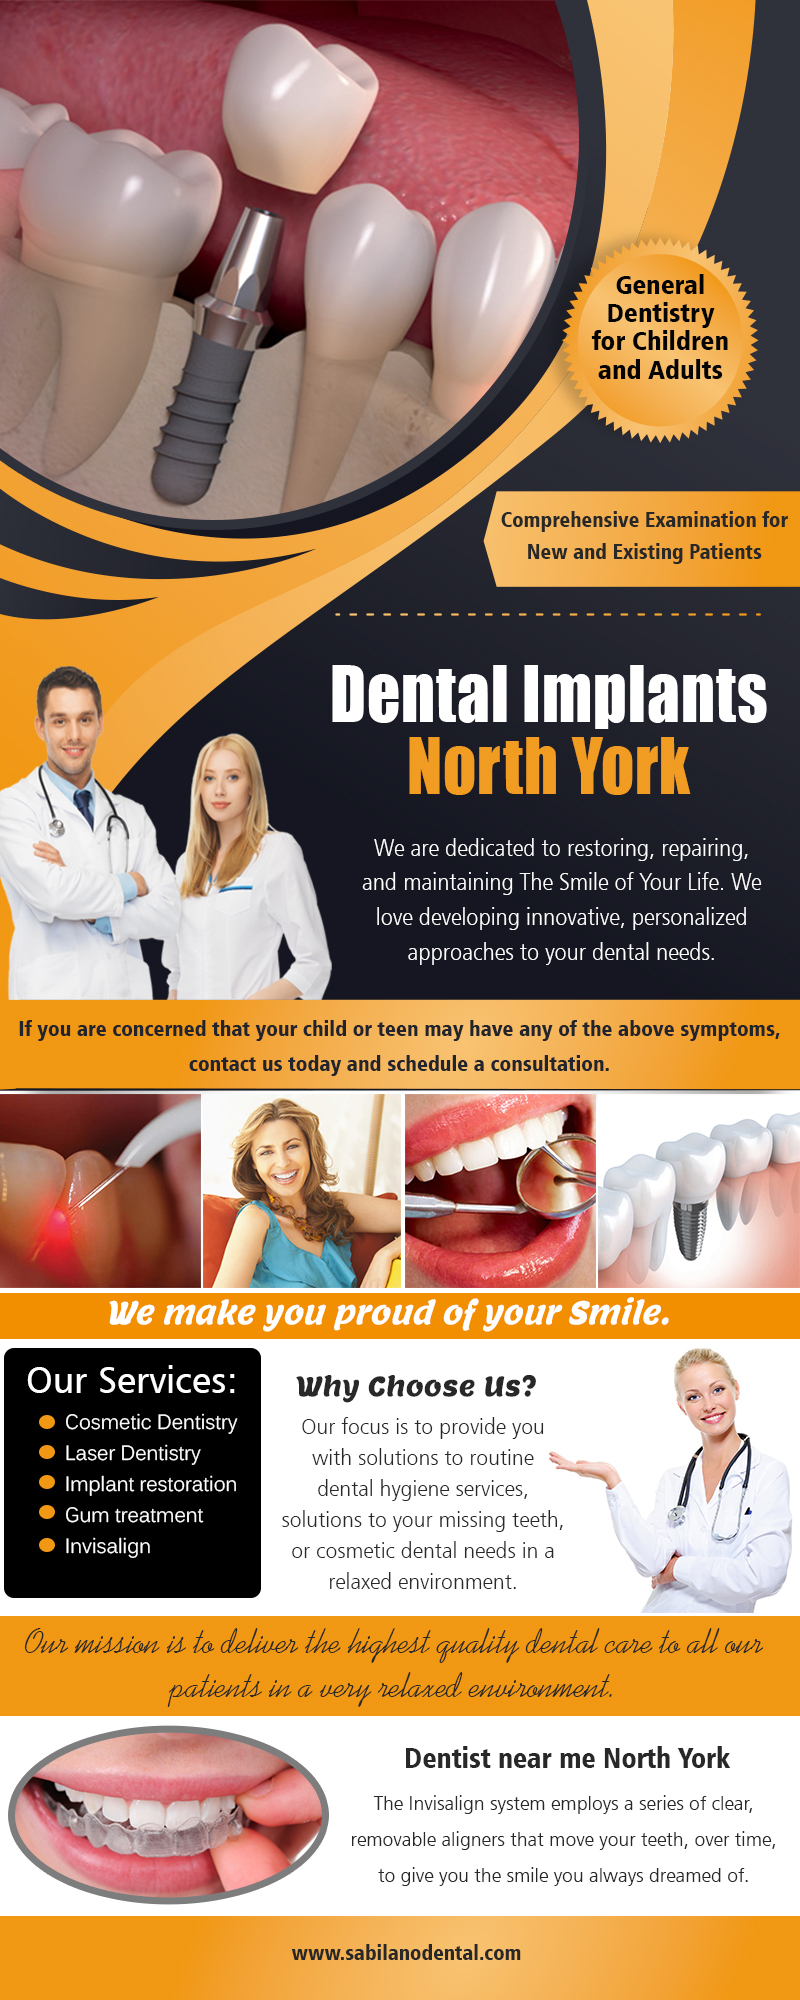 North York Dentist | Call – 14166310224 | sabilanodental.com